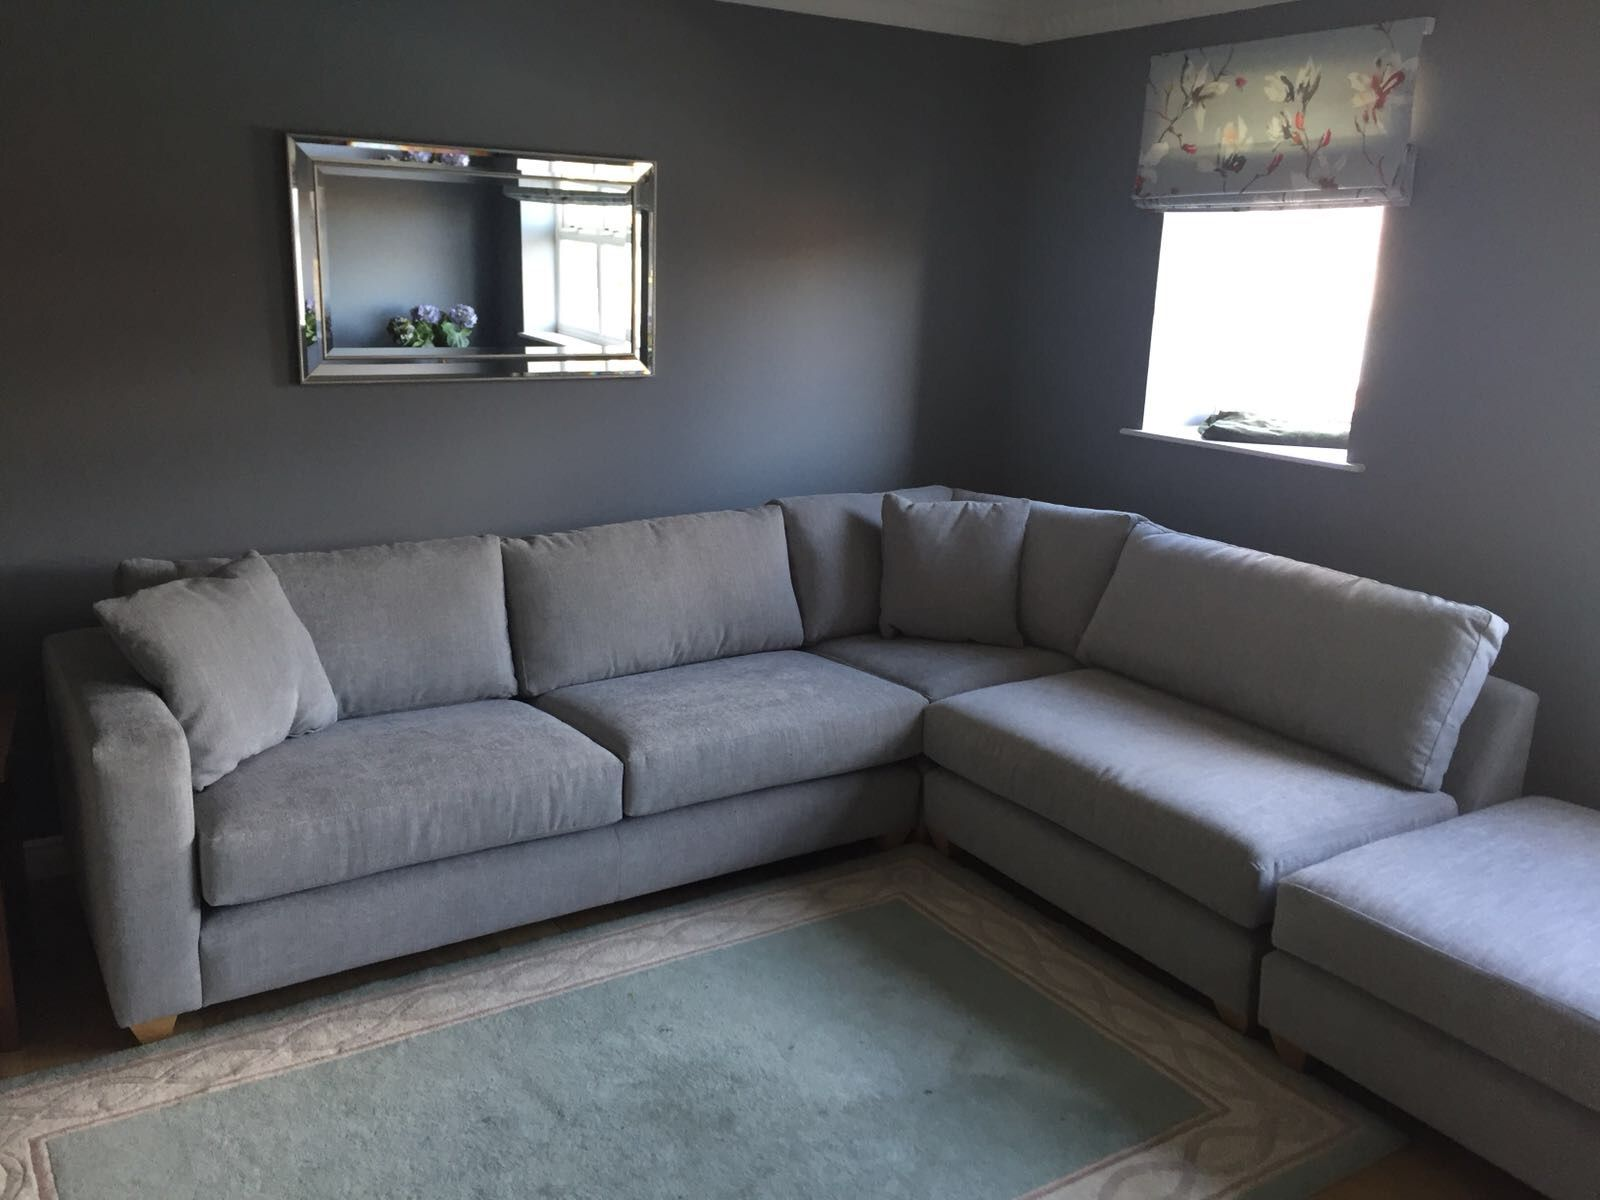 Mapperley Corner Sofa 285 Cm X 200 Cm With Matching Cushion Top Footstool 91 Cm X 91 Cm All Covered In J Brown Porto 23 Mist Fr Corner Sofa Chaise Corner Sofa Sofa